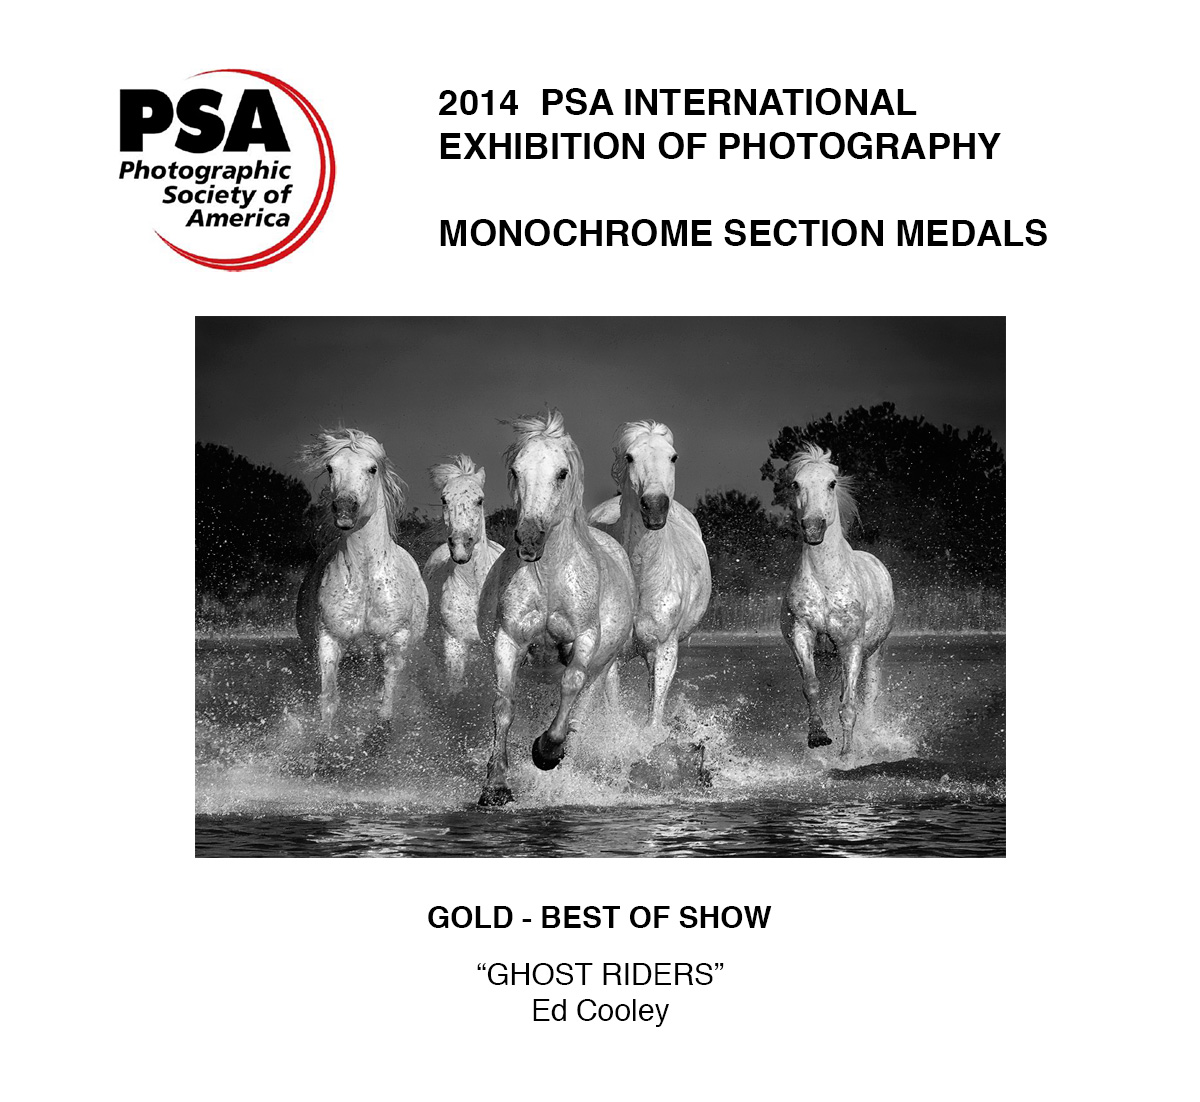 2014 PSA Gold Medalist and Best of Show